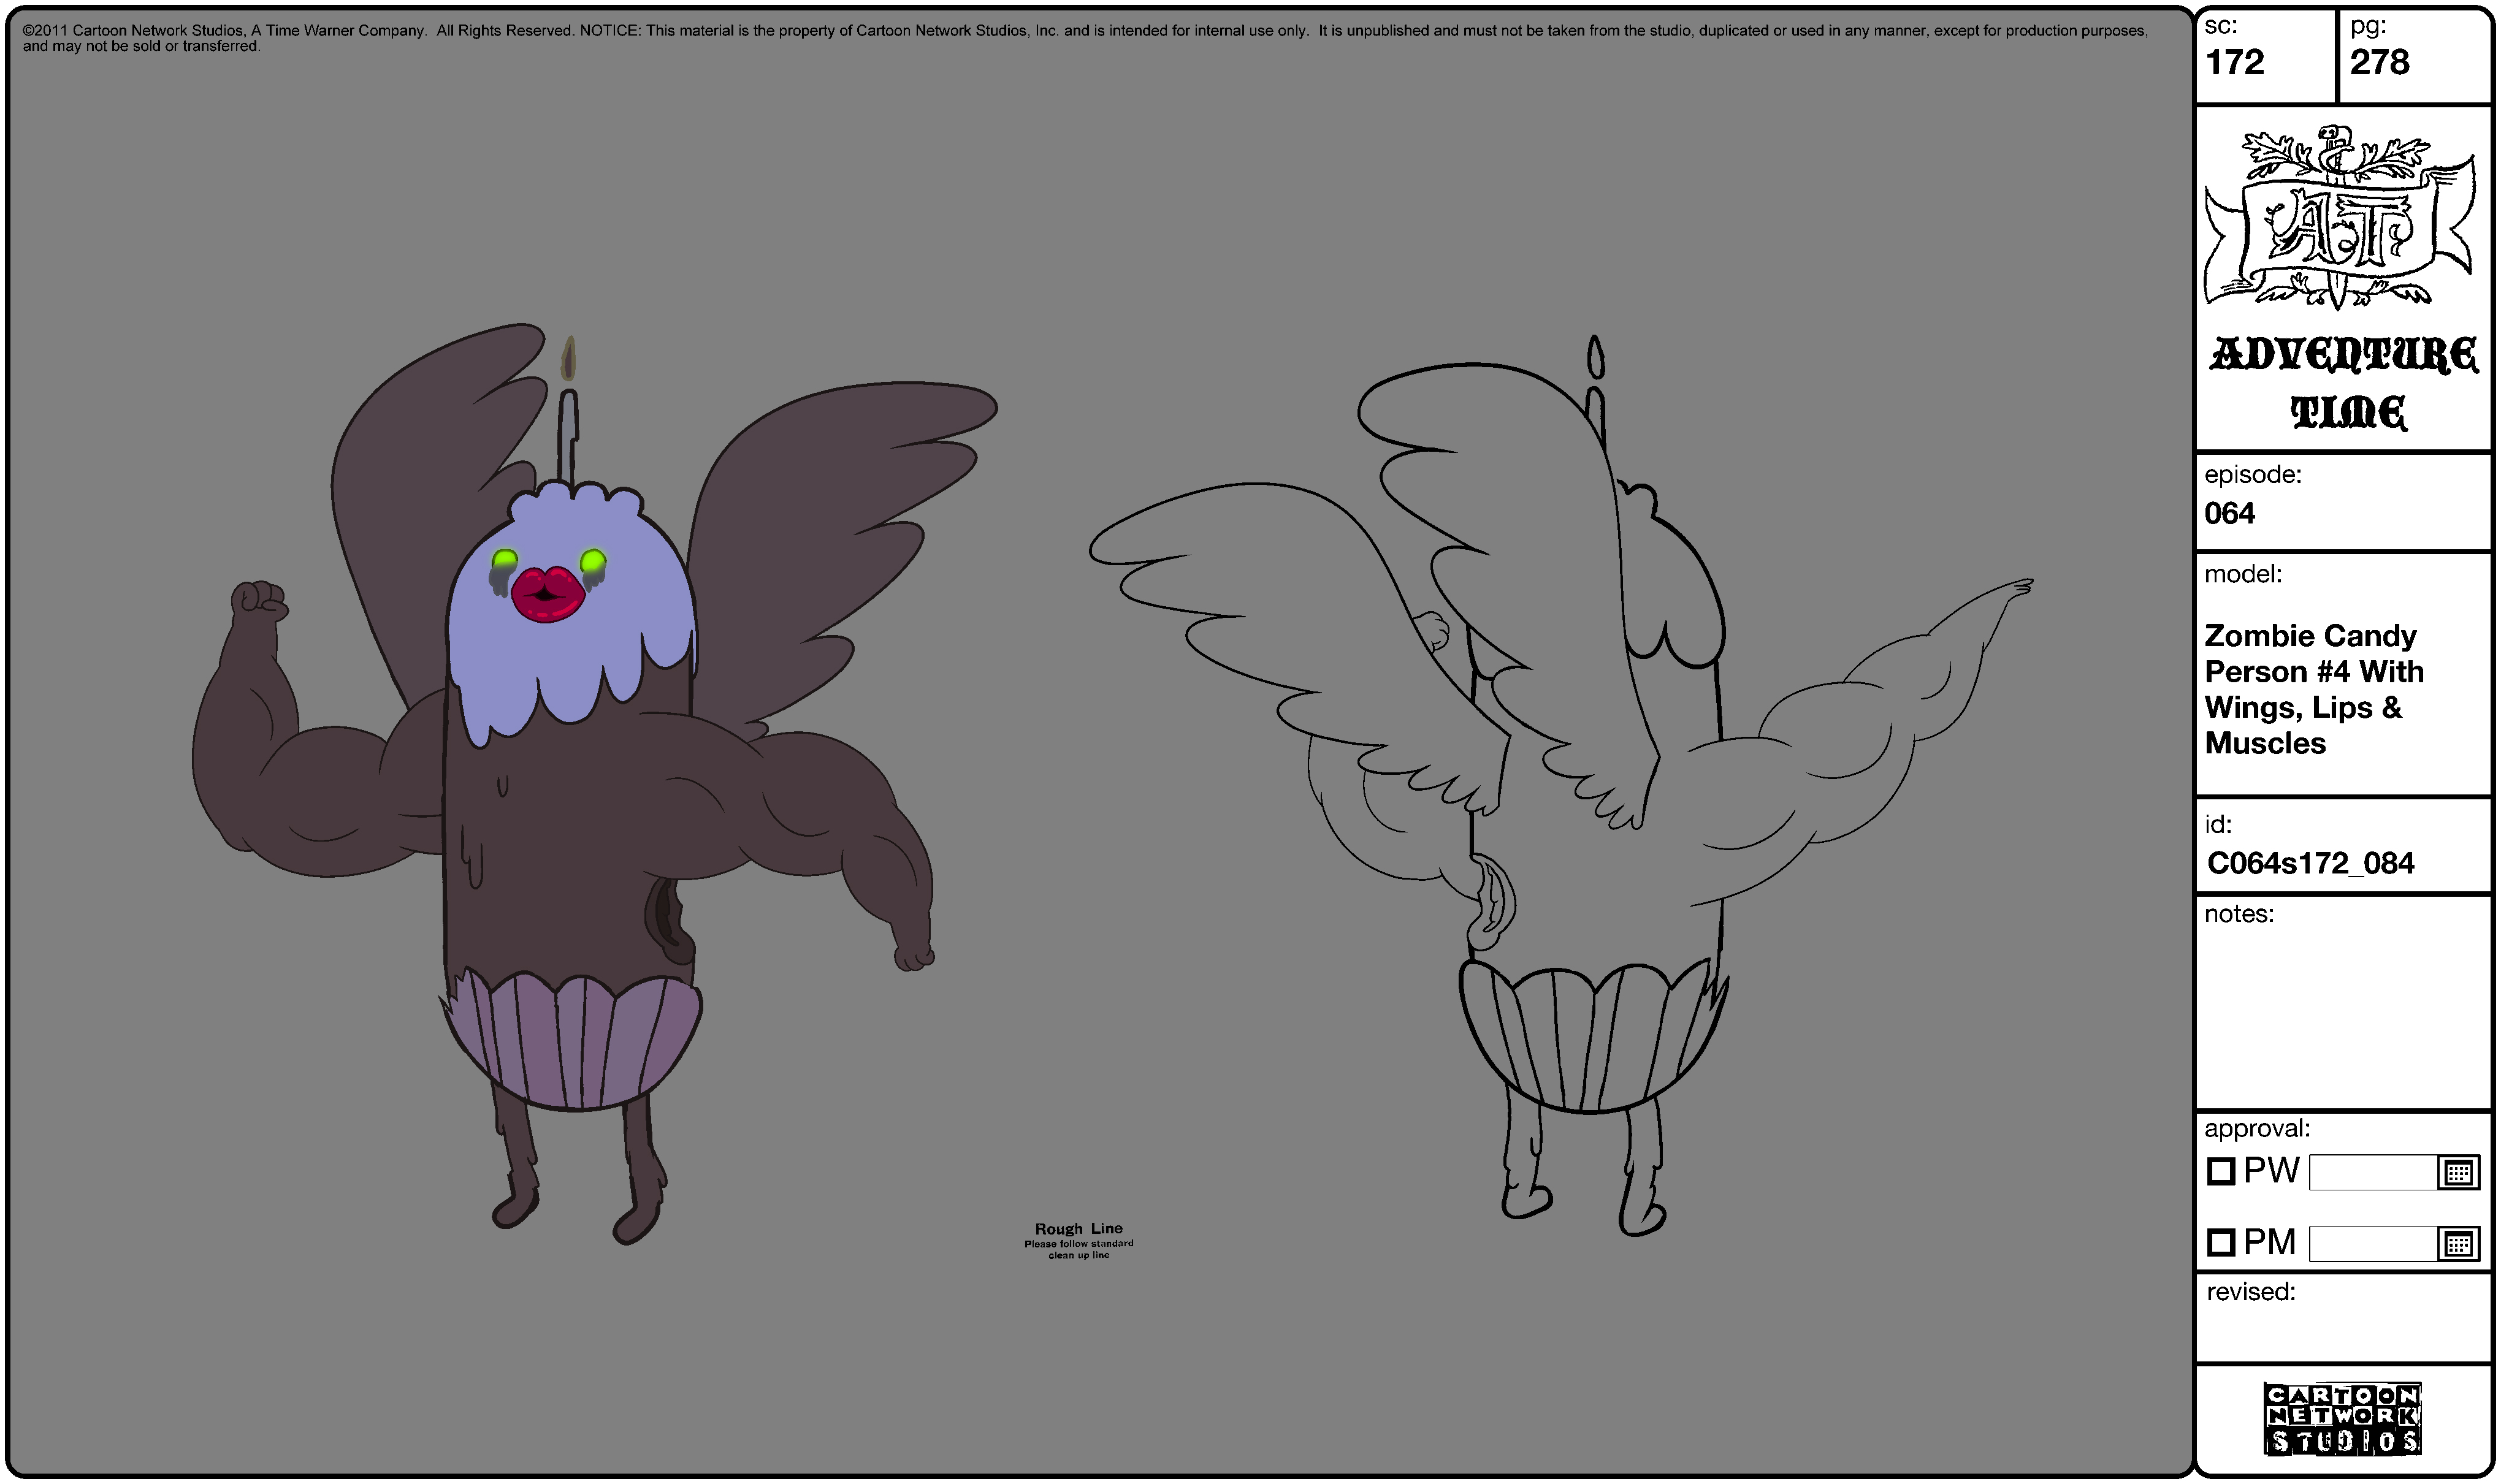 Modelsheet Zombie Candy Person -4 with Wings, Lips & Muscles